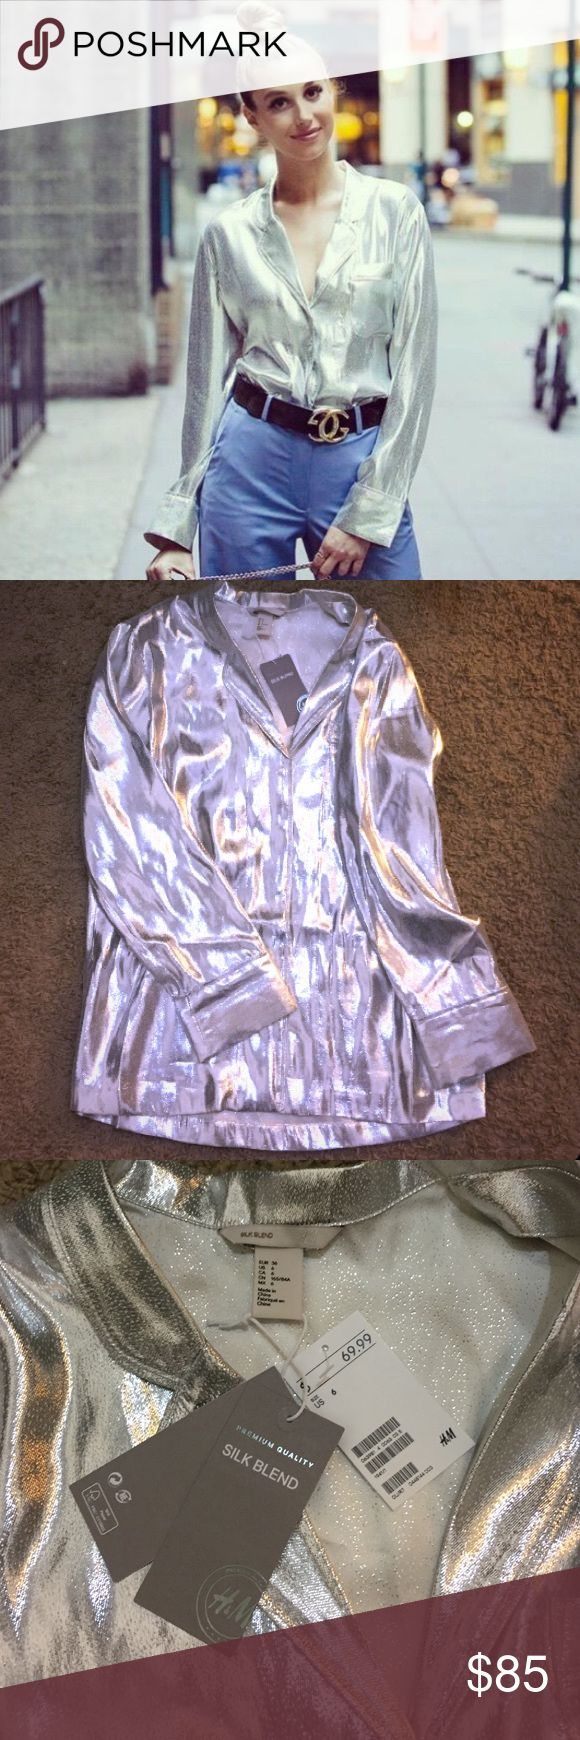 NWT H&M Premium Silk Blend Metallic Blouse As seen on Whitney Port! Gorgeous collared silver button-up blouse from H&M's premium quality line. Silk blend. No longer in stores, sold out!! Size 6, oversized fit compared to H&M's normal sizing. New with tags. Perfect for the holidays! H&M Tops Blouses